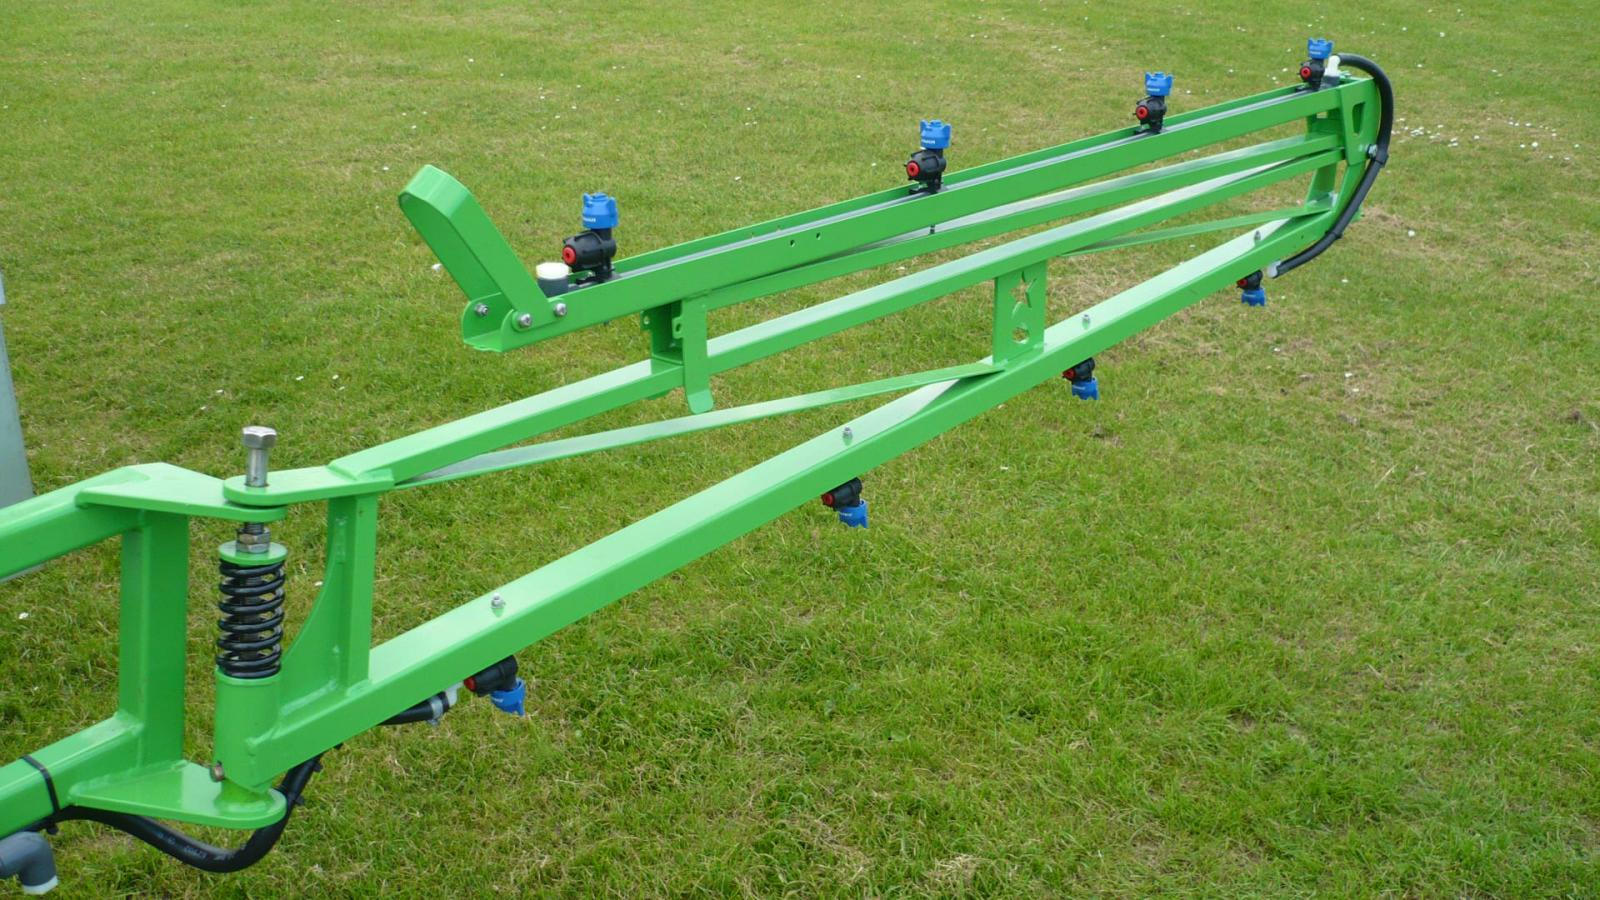 Optional boom extensions can take the spraying width to 10 metres with the STARGREEN UTV DemountAmenity Sprayers